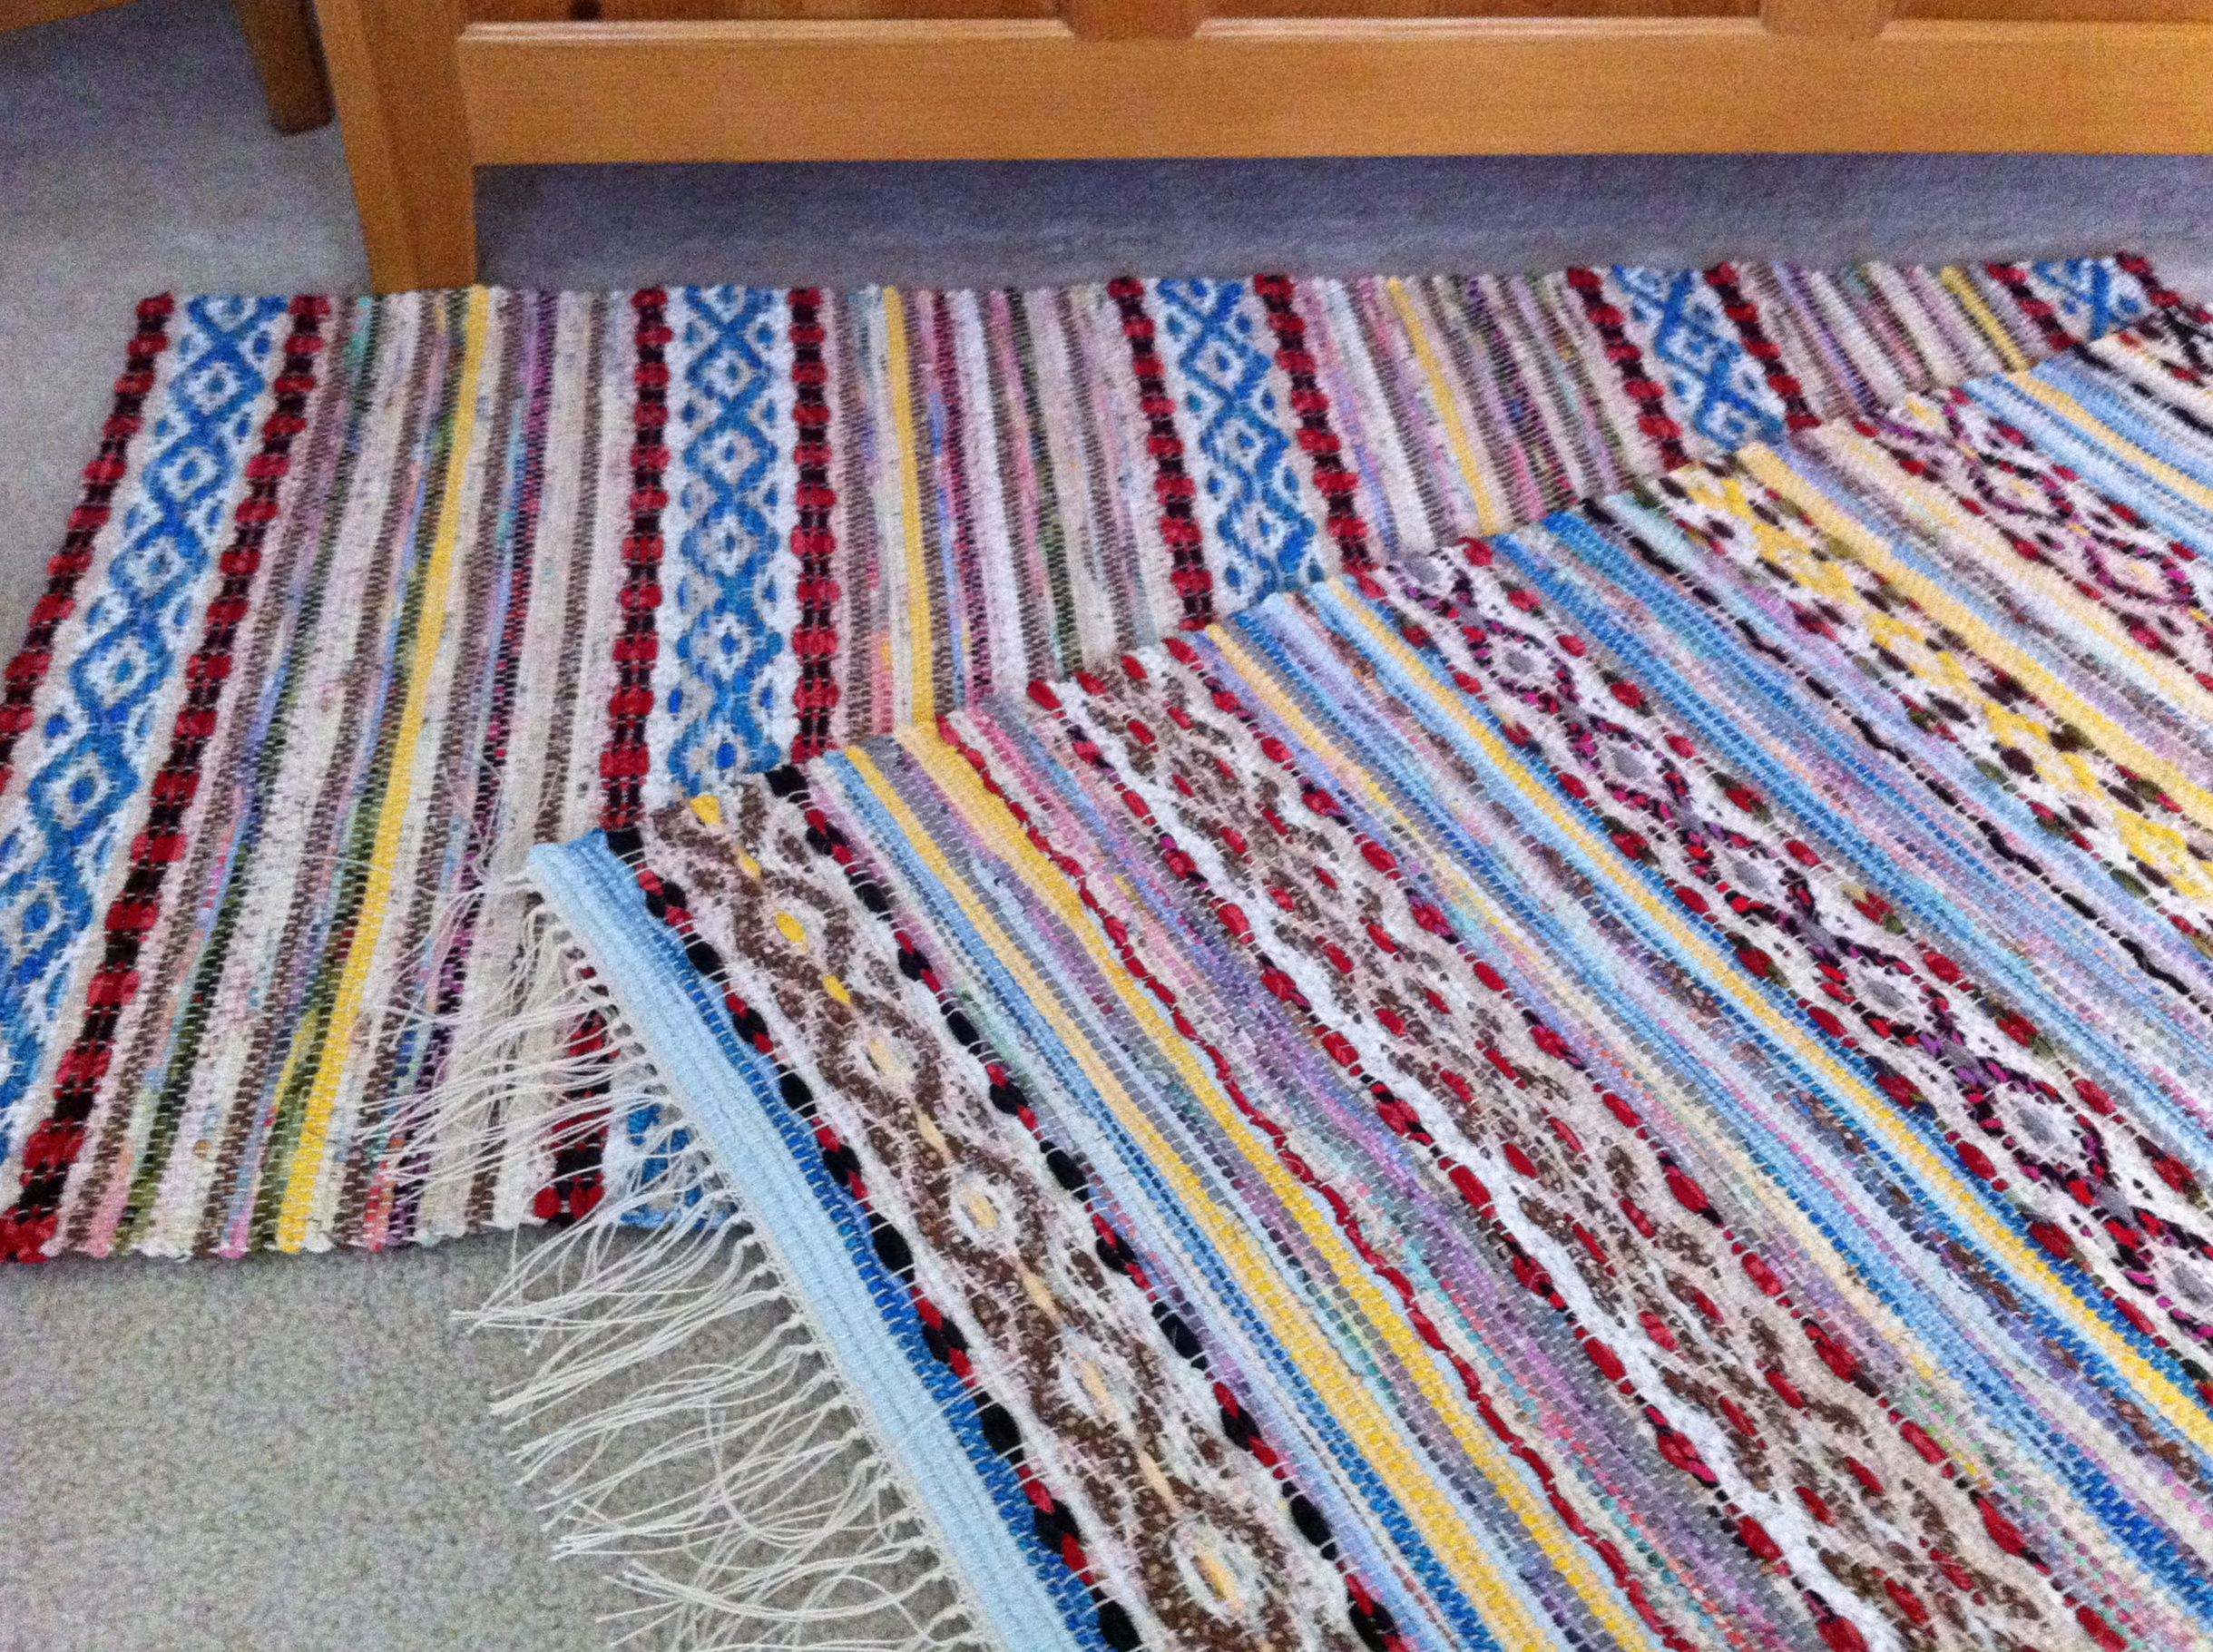 Quiet Friday Rag Rugs Warped For Good